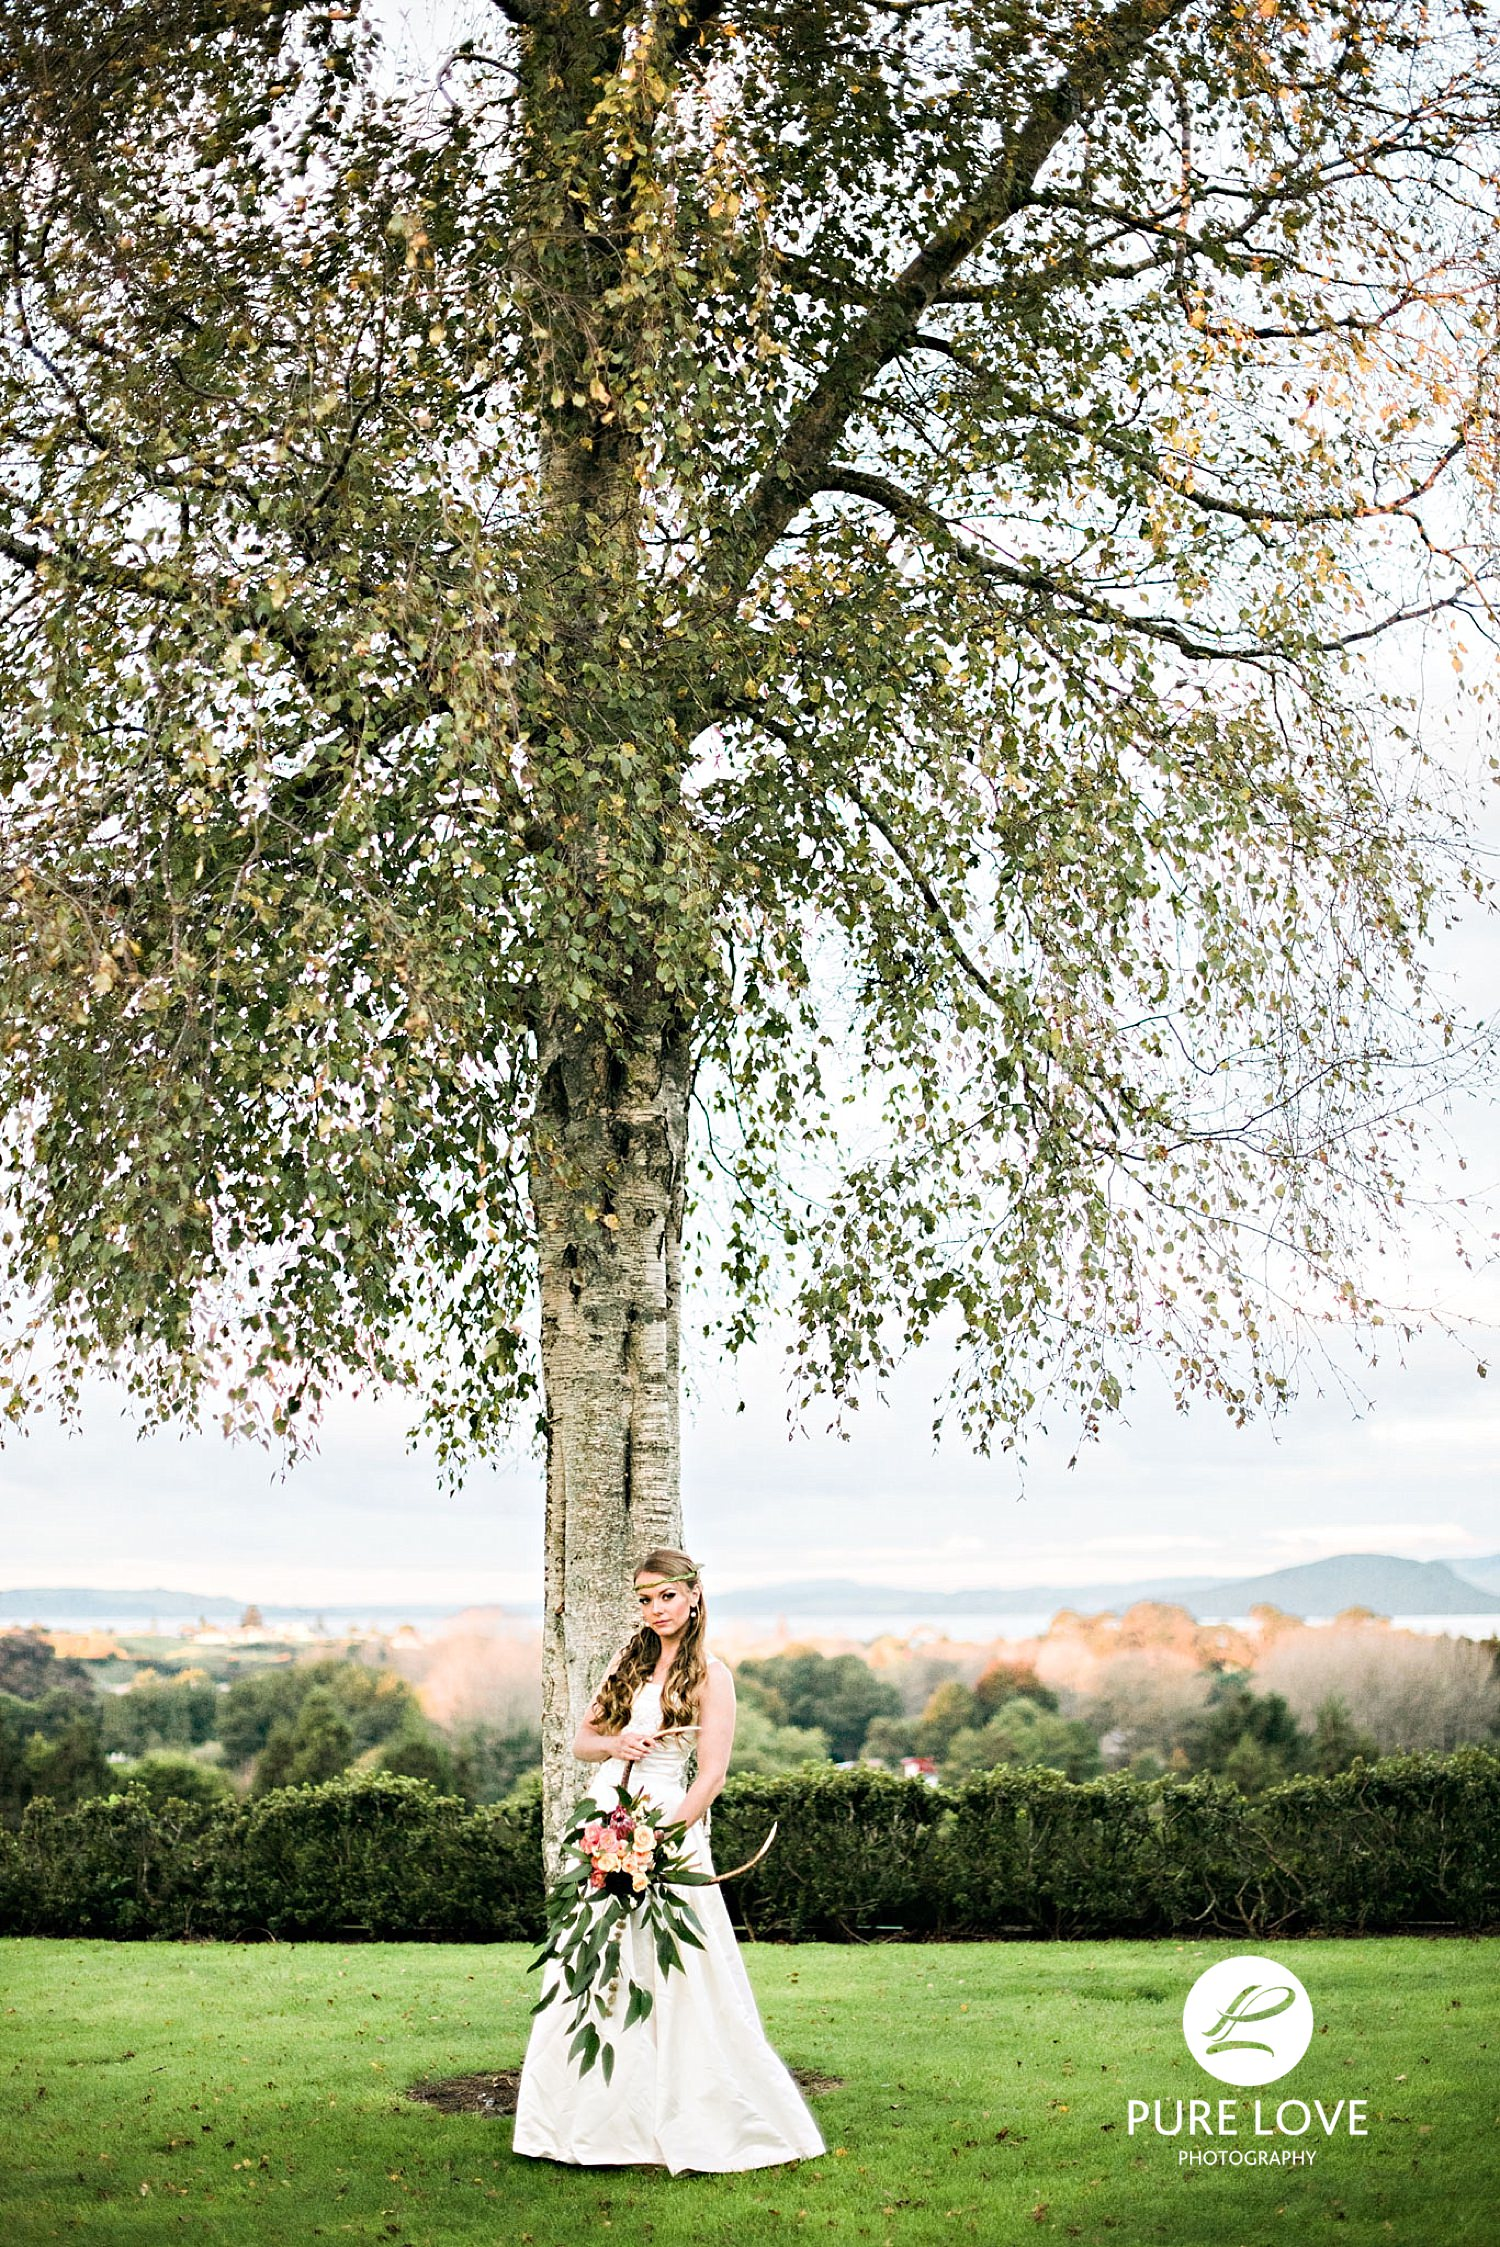 Ceremonies are held on top of the hill with a backdrop of trees and breathtaking views of the Agrodome land, the town and the Rotorua Lake. No doubt it is a great spot for romantic ceremony and location photos.